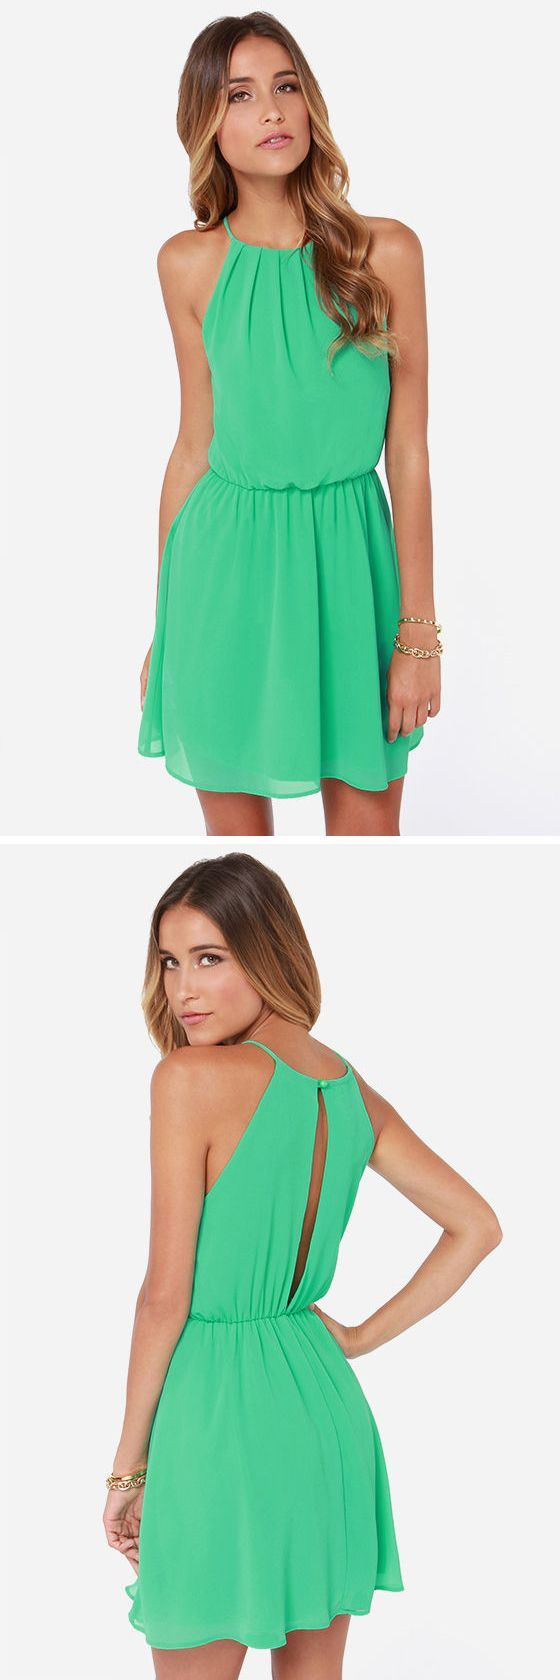 Up to something green dress homecoming dresses short prom dresses